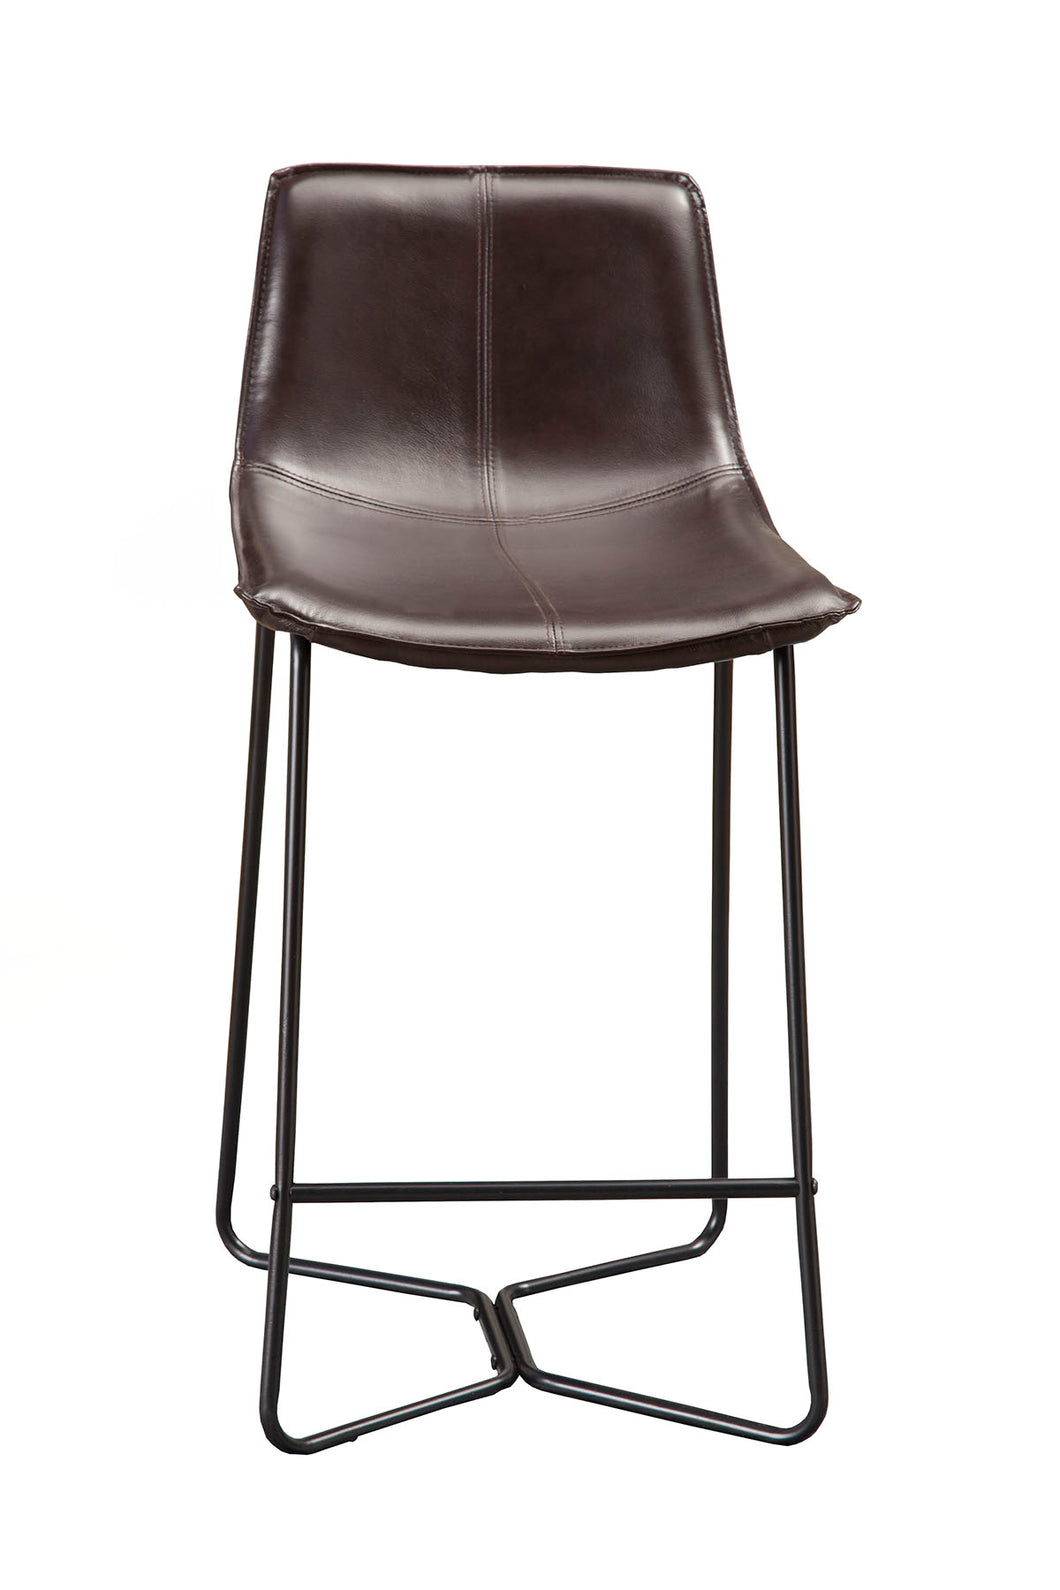 Live Edge Leather Pub Chairs, Dark Brown